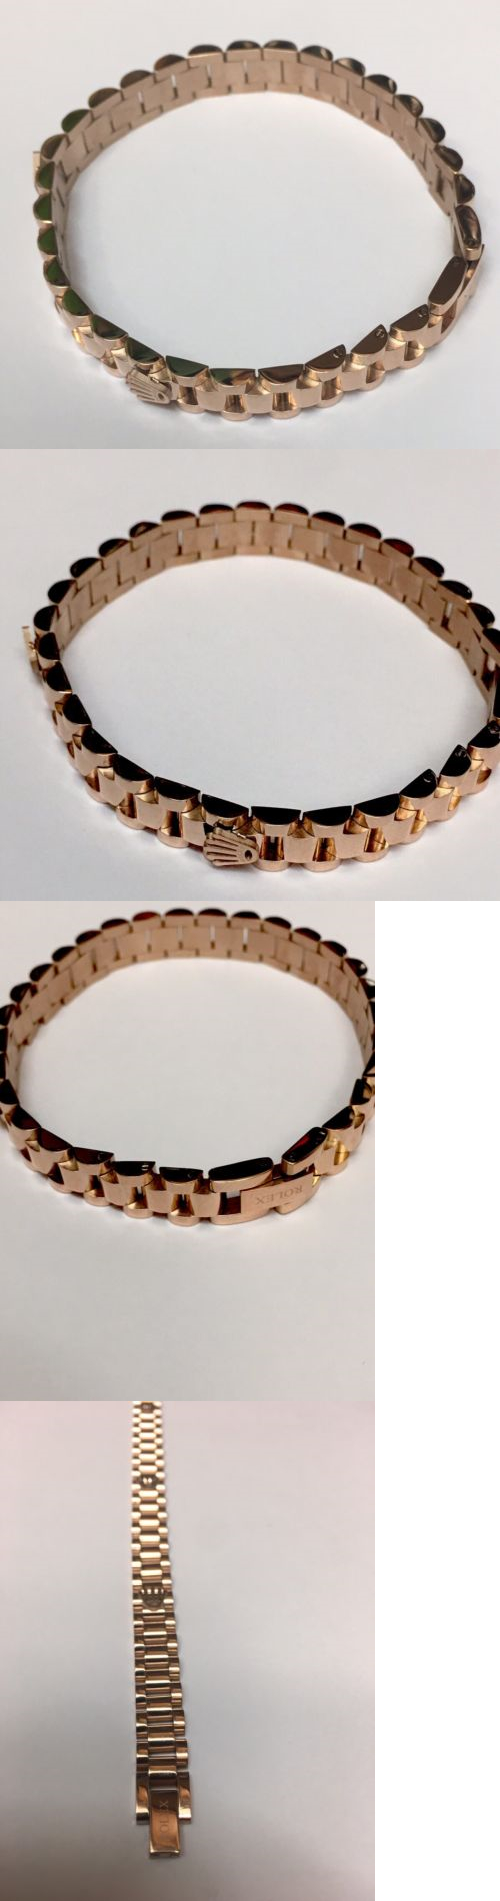 Bracelets rolex unisex k gold plated stainless steal